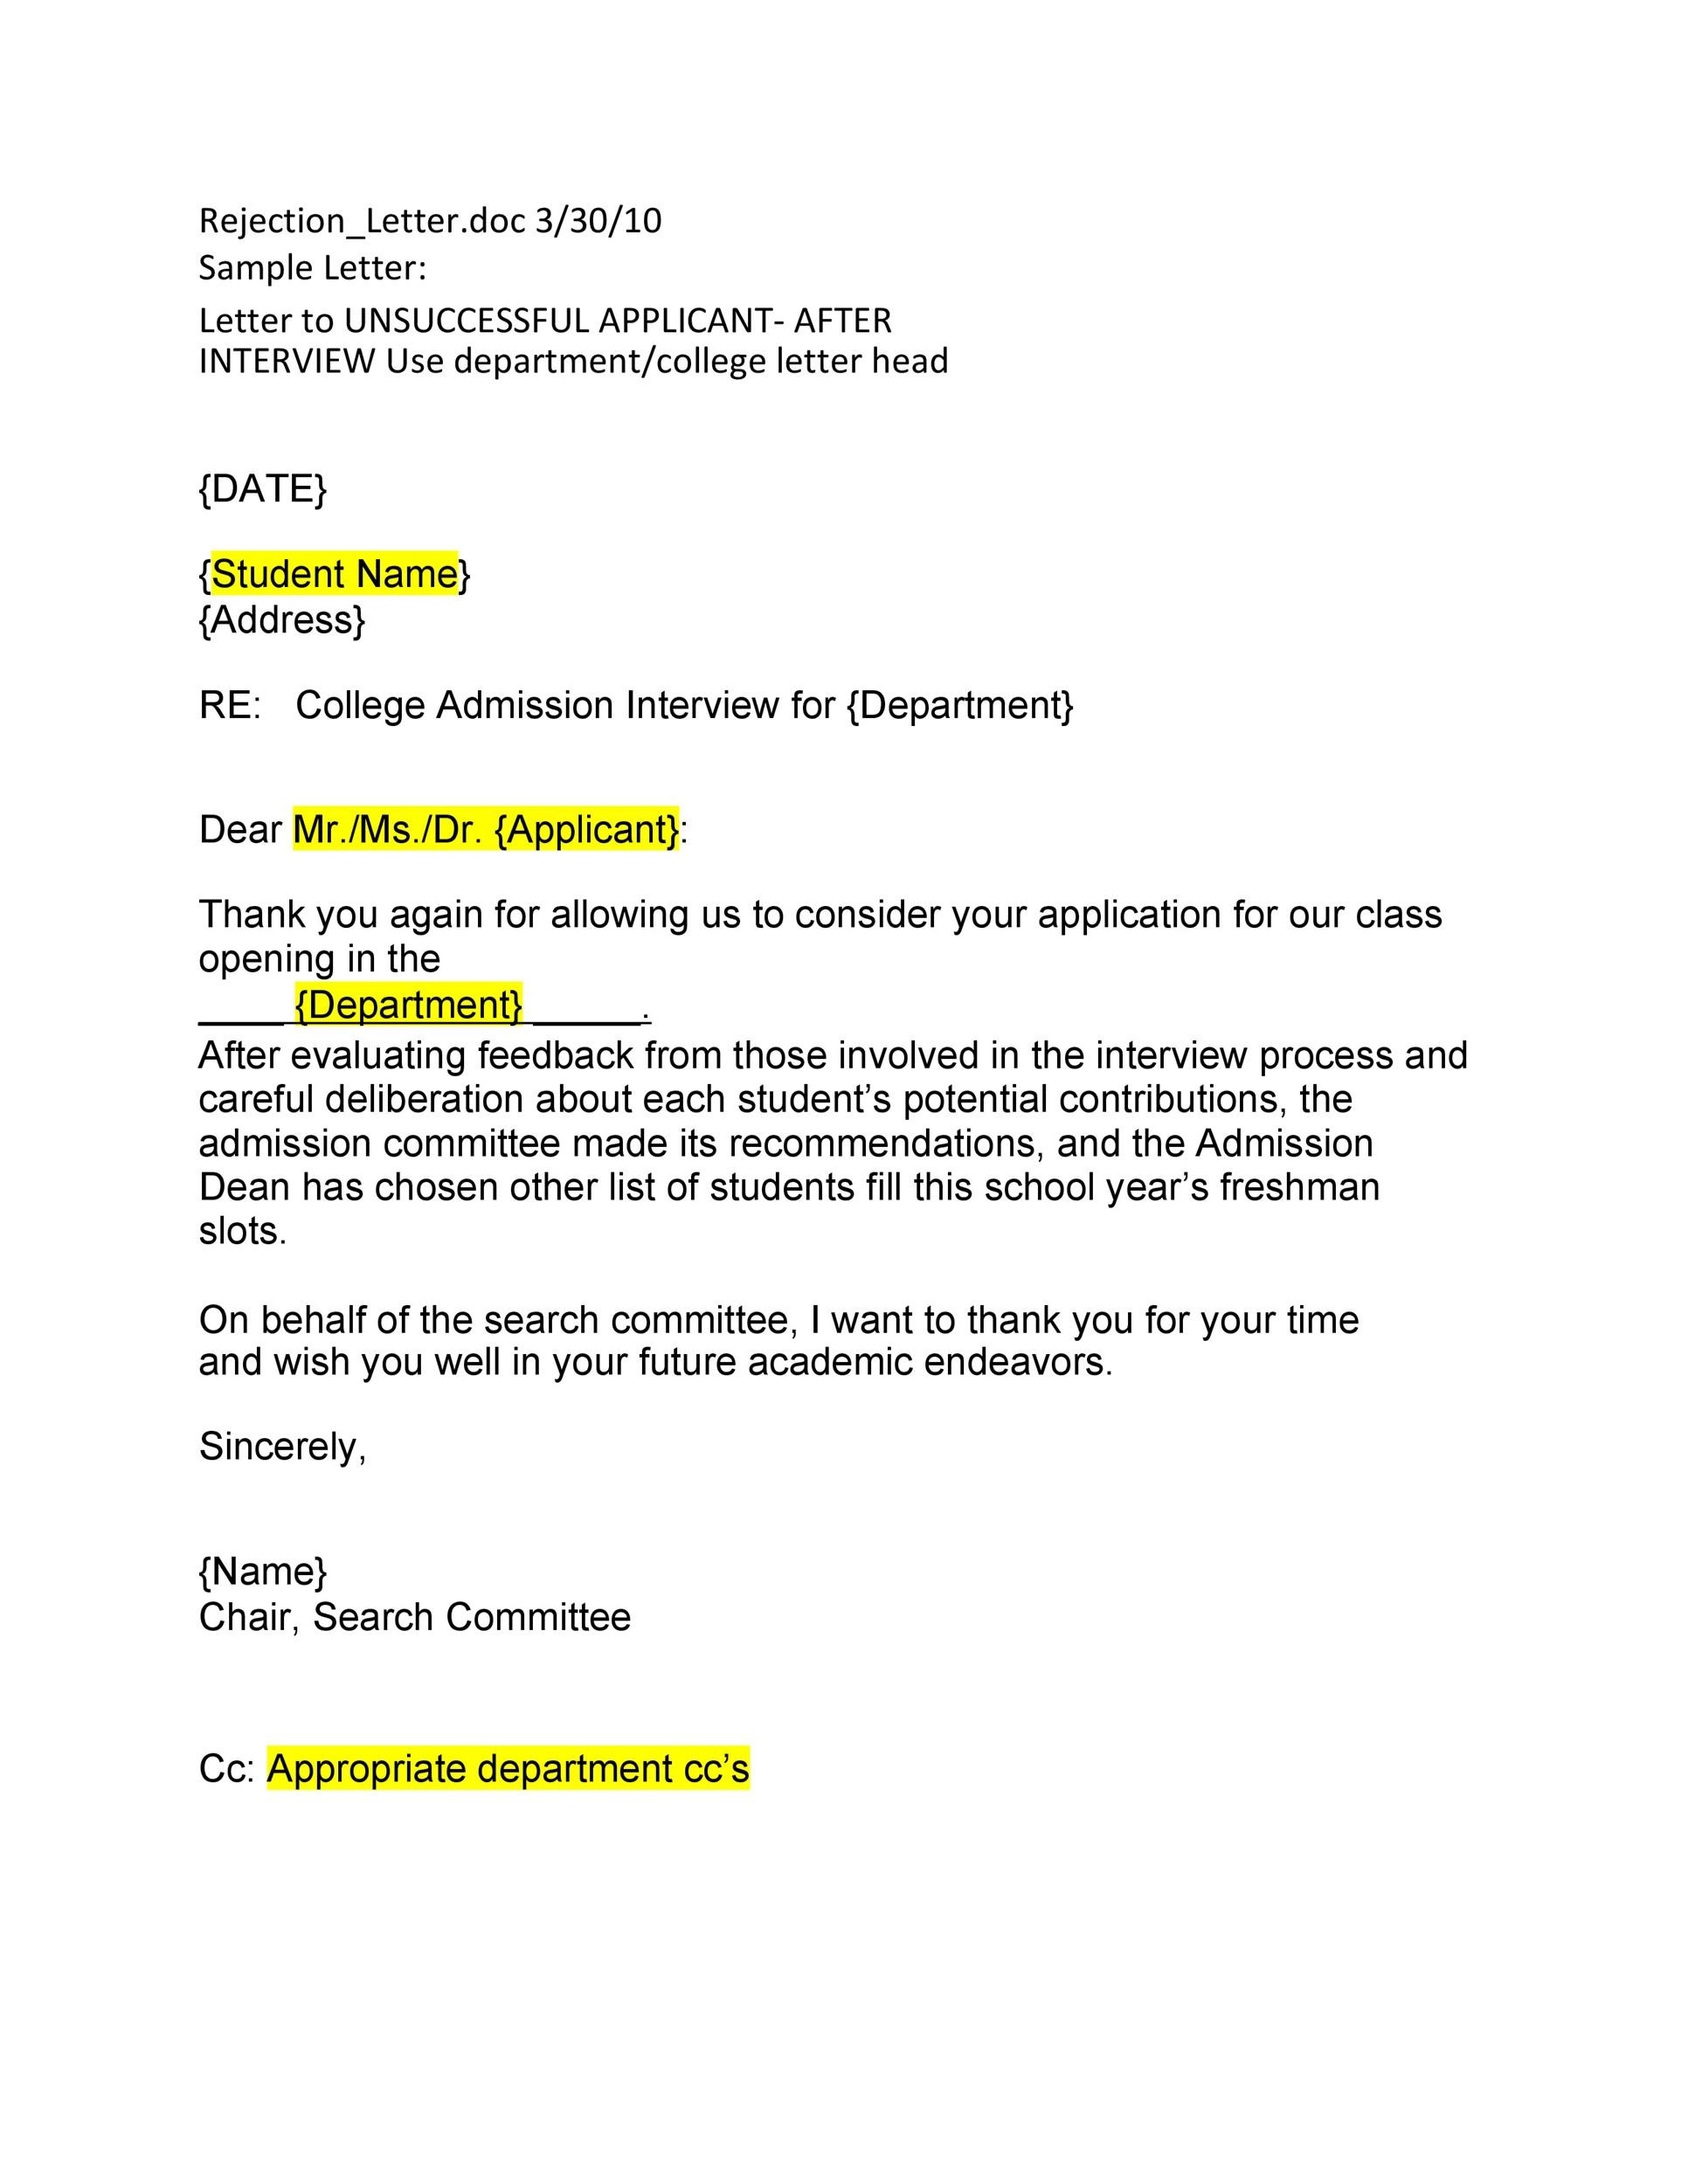 Free college rejection letter 34